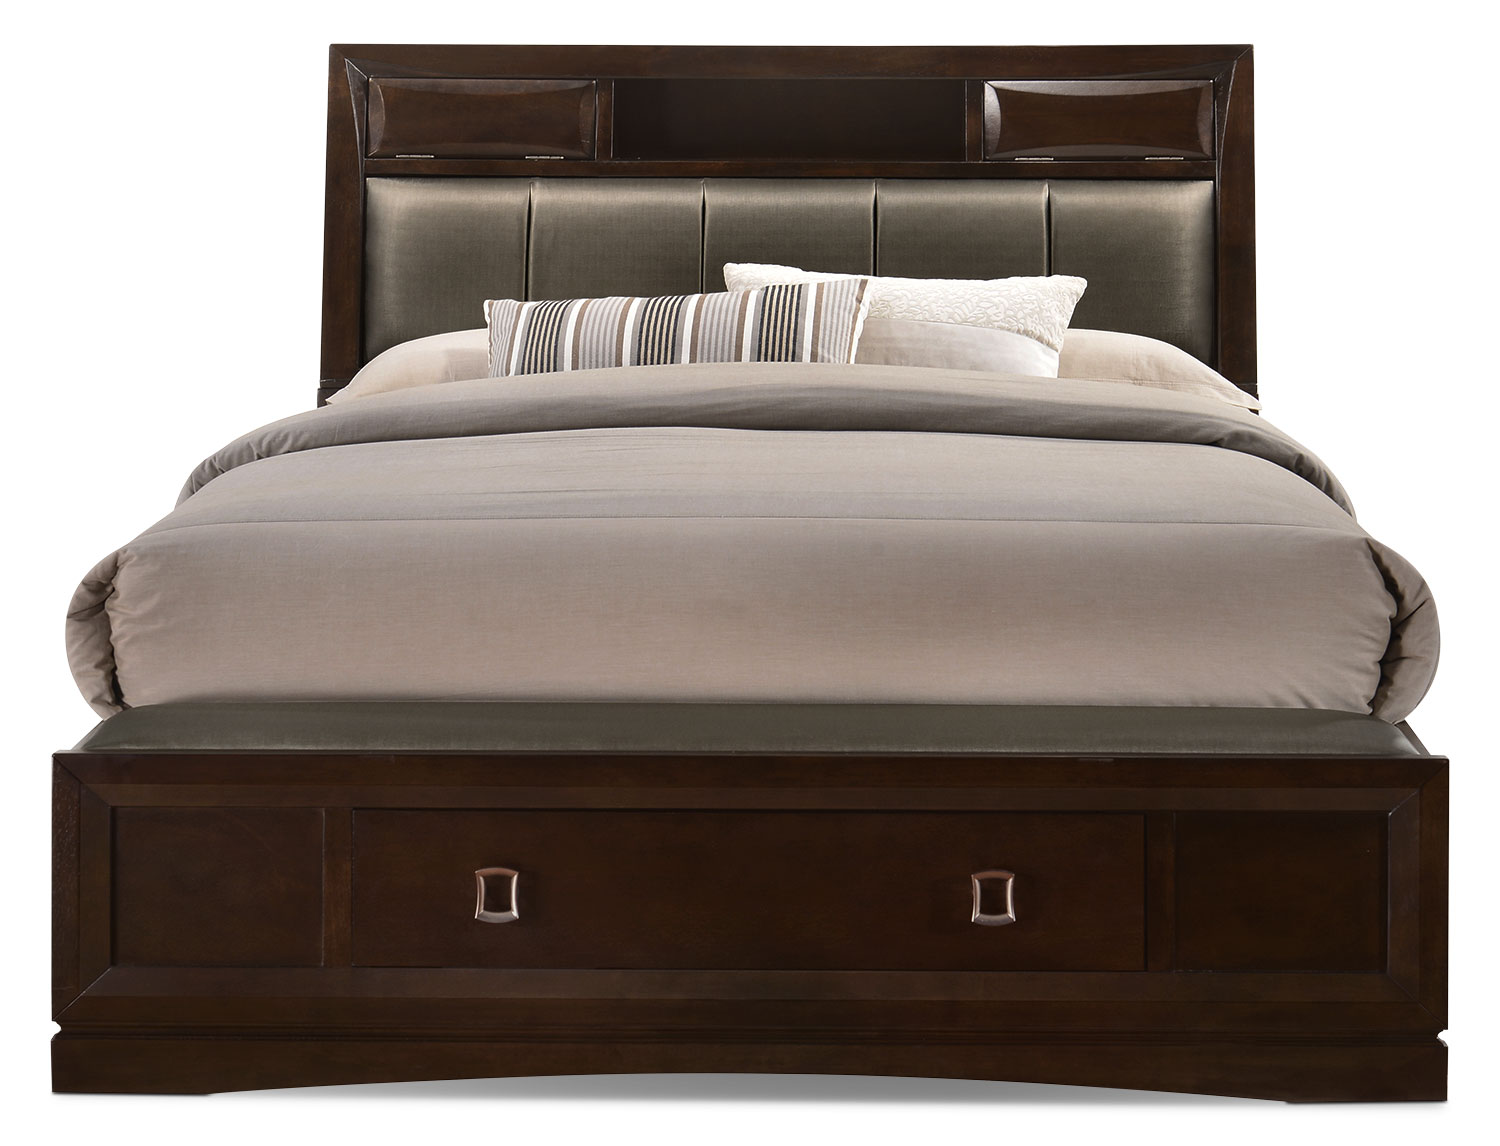 Beanston king bookcase storage bed - Bookcase headboard king bedroom set ...